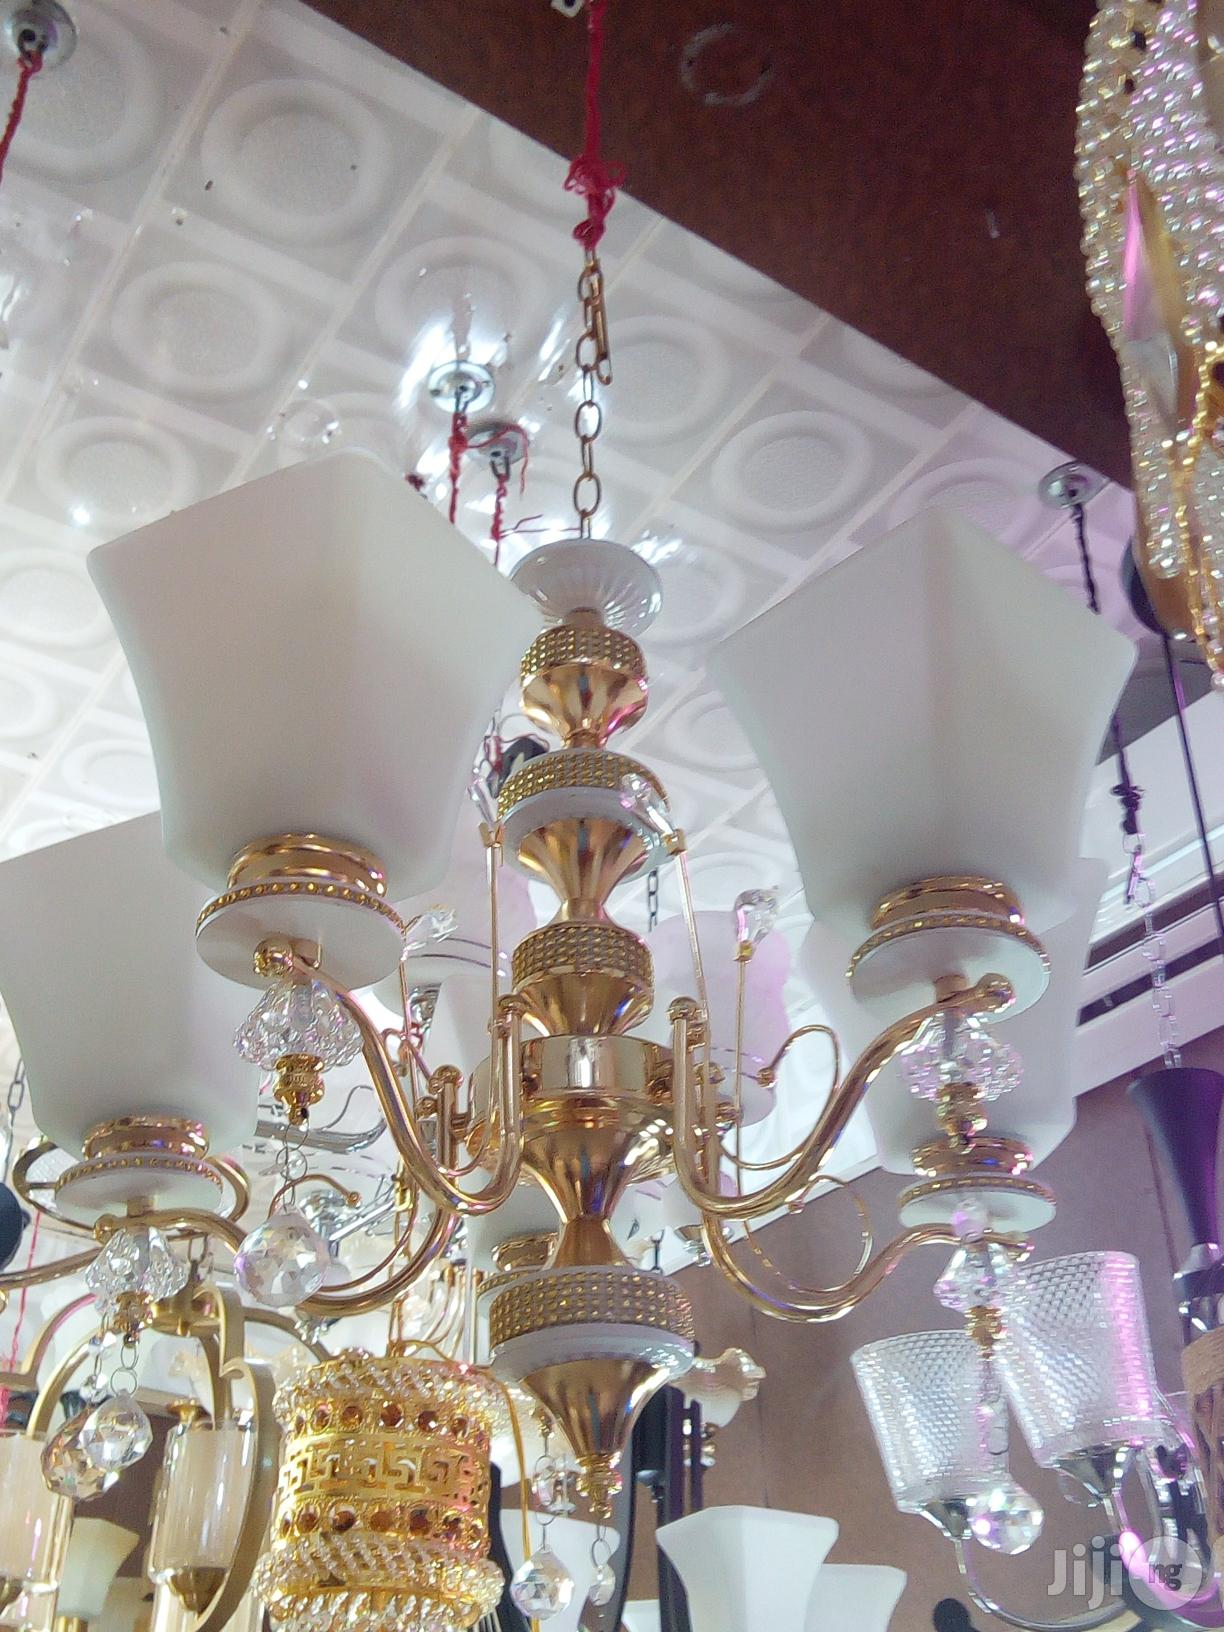 Quality Chandelier Light | Home Accessories for sale in Ojo, Lagos State, Nigeria